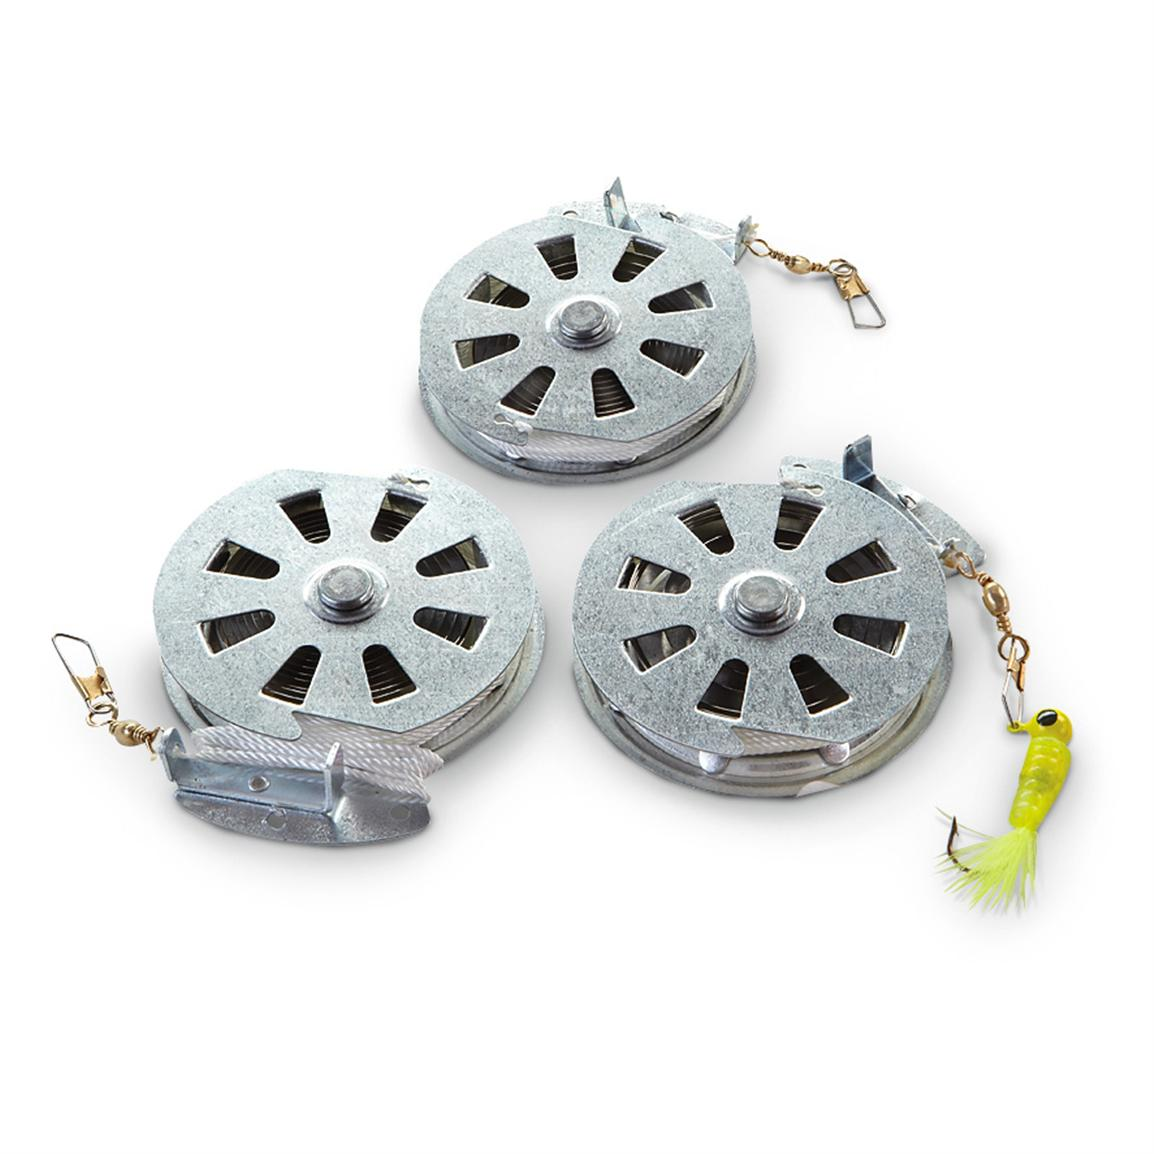 Yo-Yo Auto Fishing Reels, 12 Count